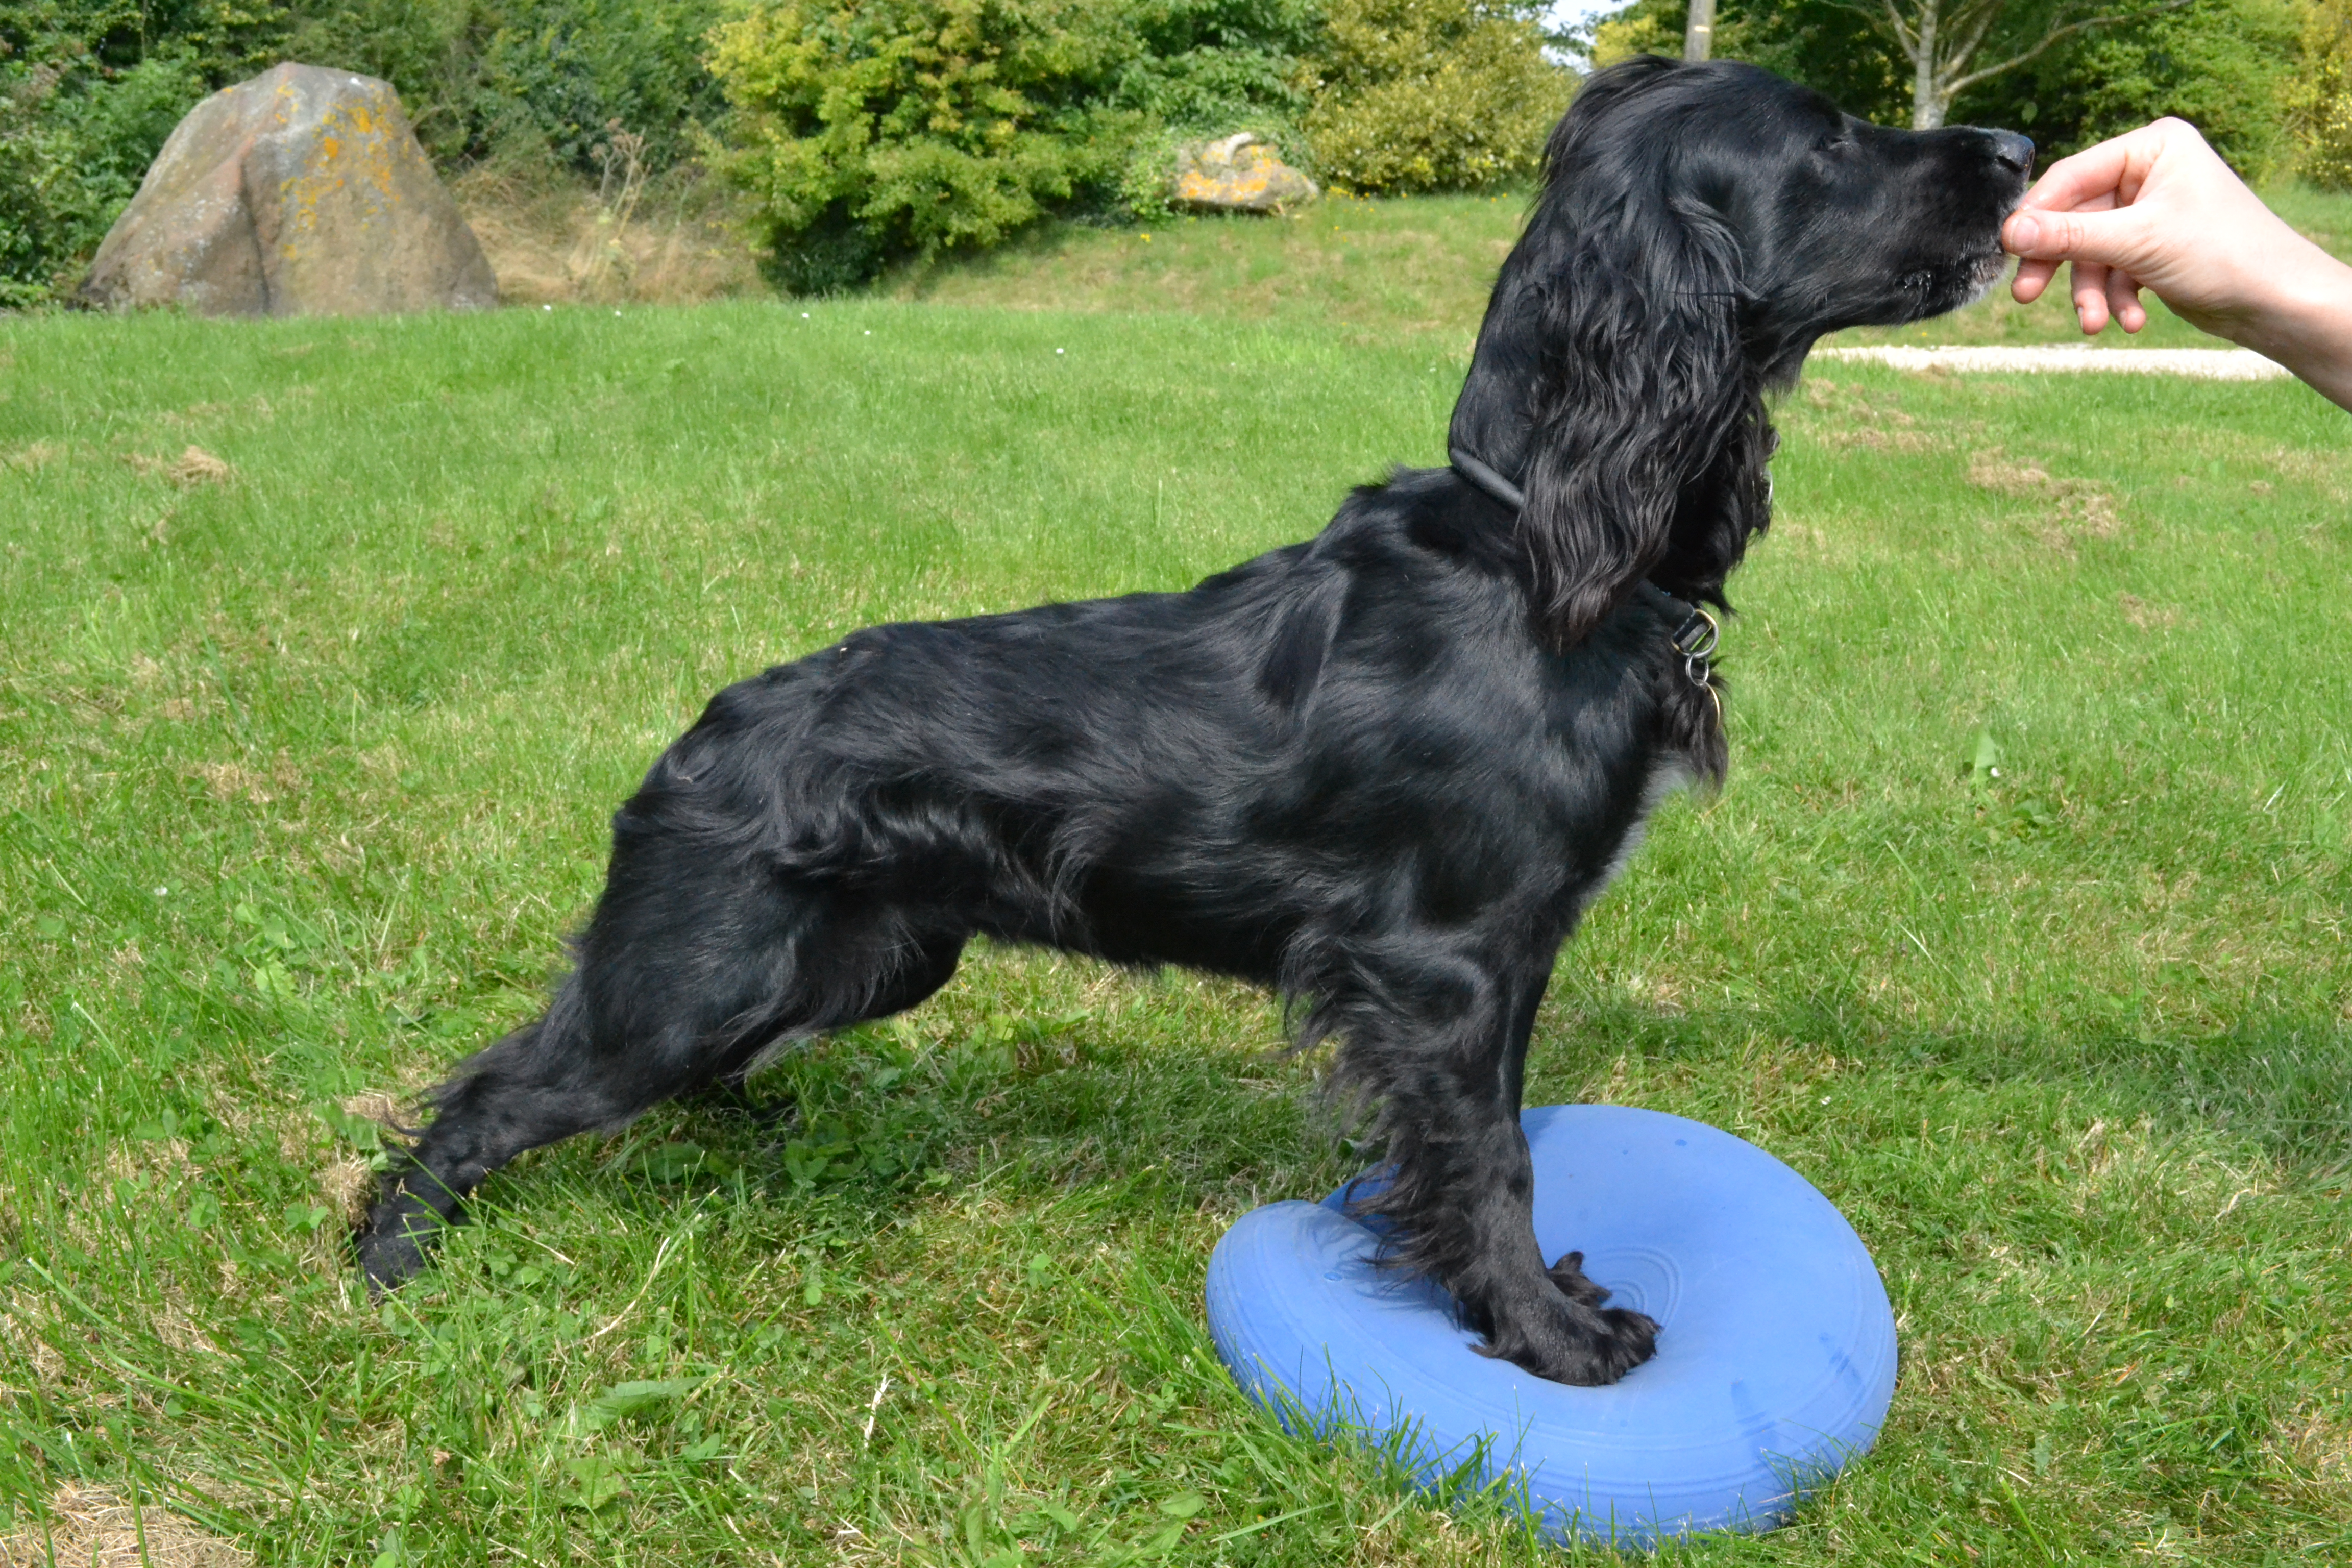 Dog on wobble cushtion to improve proprioception and core stability